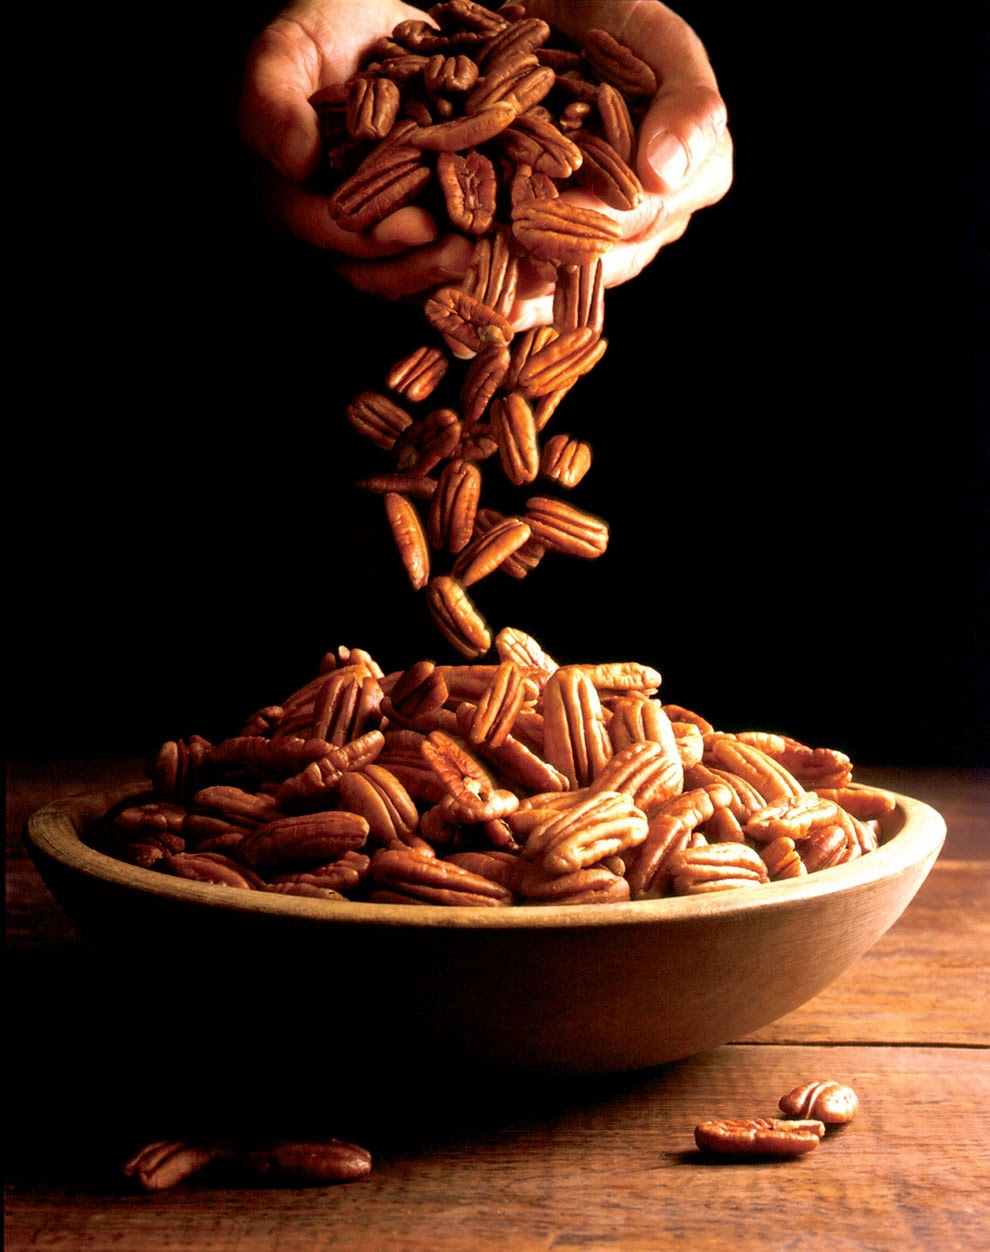 http://statebystategardening.com/state.php/al/articles/plenty_of_pecans_for_the_holidays/